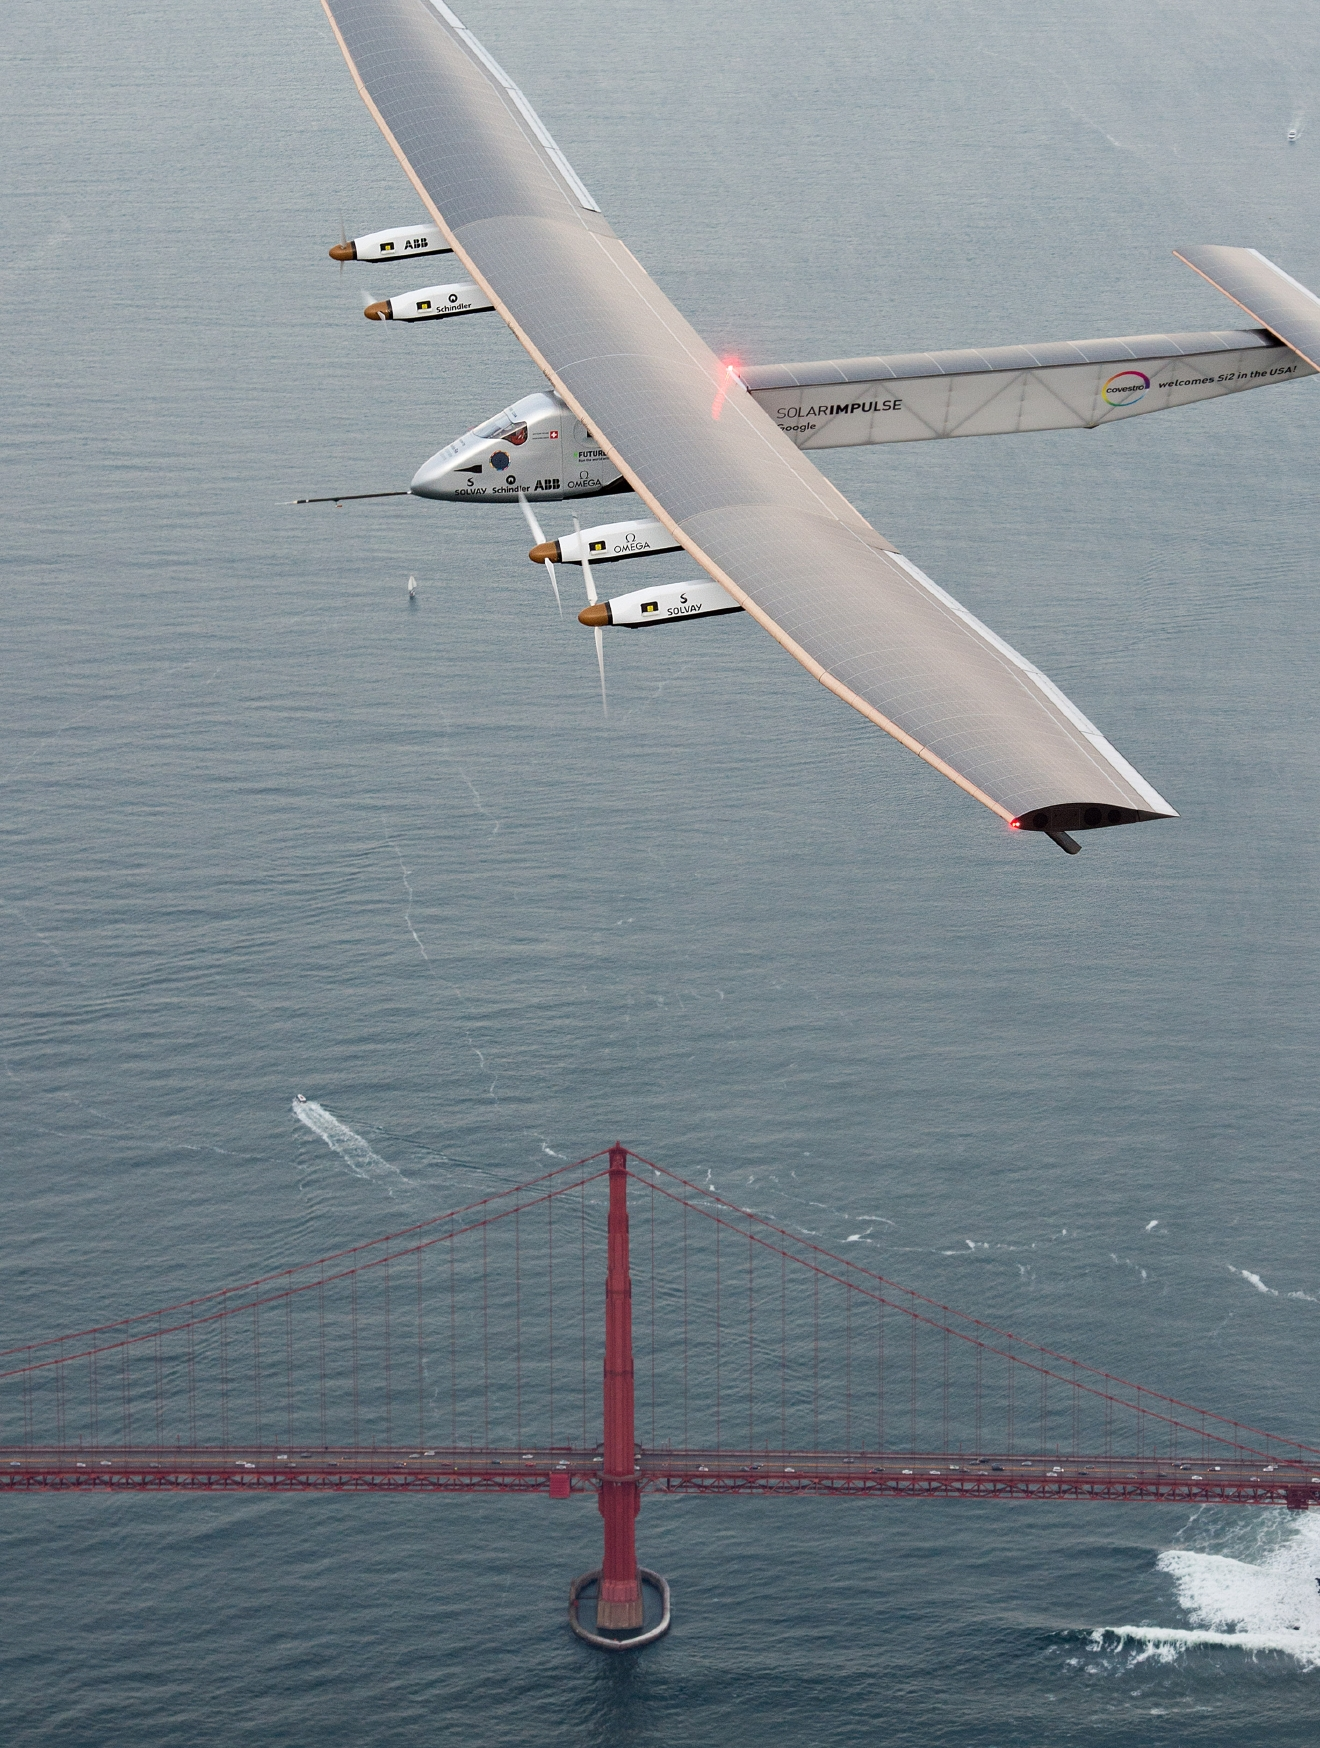 Solar Impulse 2 flies over the Golden Gate Bridge in San Francisco on Saturday, April 23, 2016. The solar-powered airplane, which is attempting to circumnavigate the globe to promote clean energy and the spirit of innovation, arrived from Hawaii after a three-day journey across the Pacific Ocean. (AP Photo/Noah Berger)